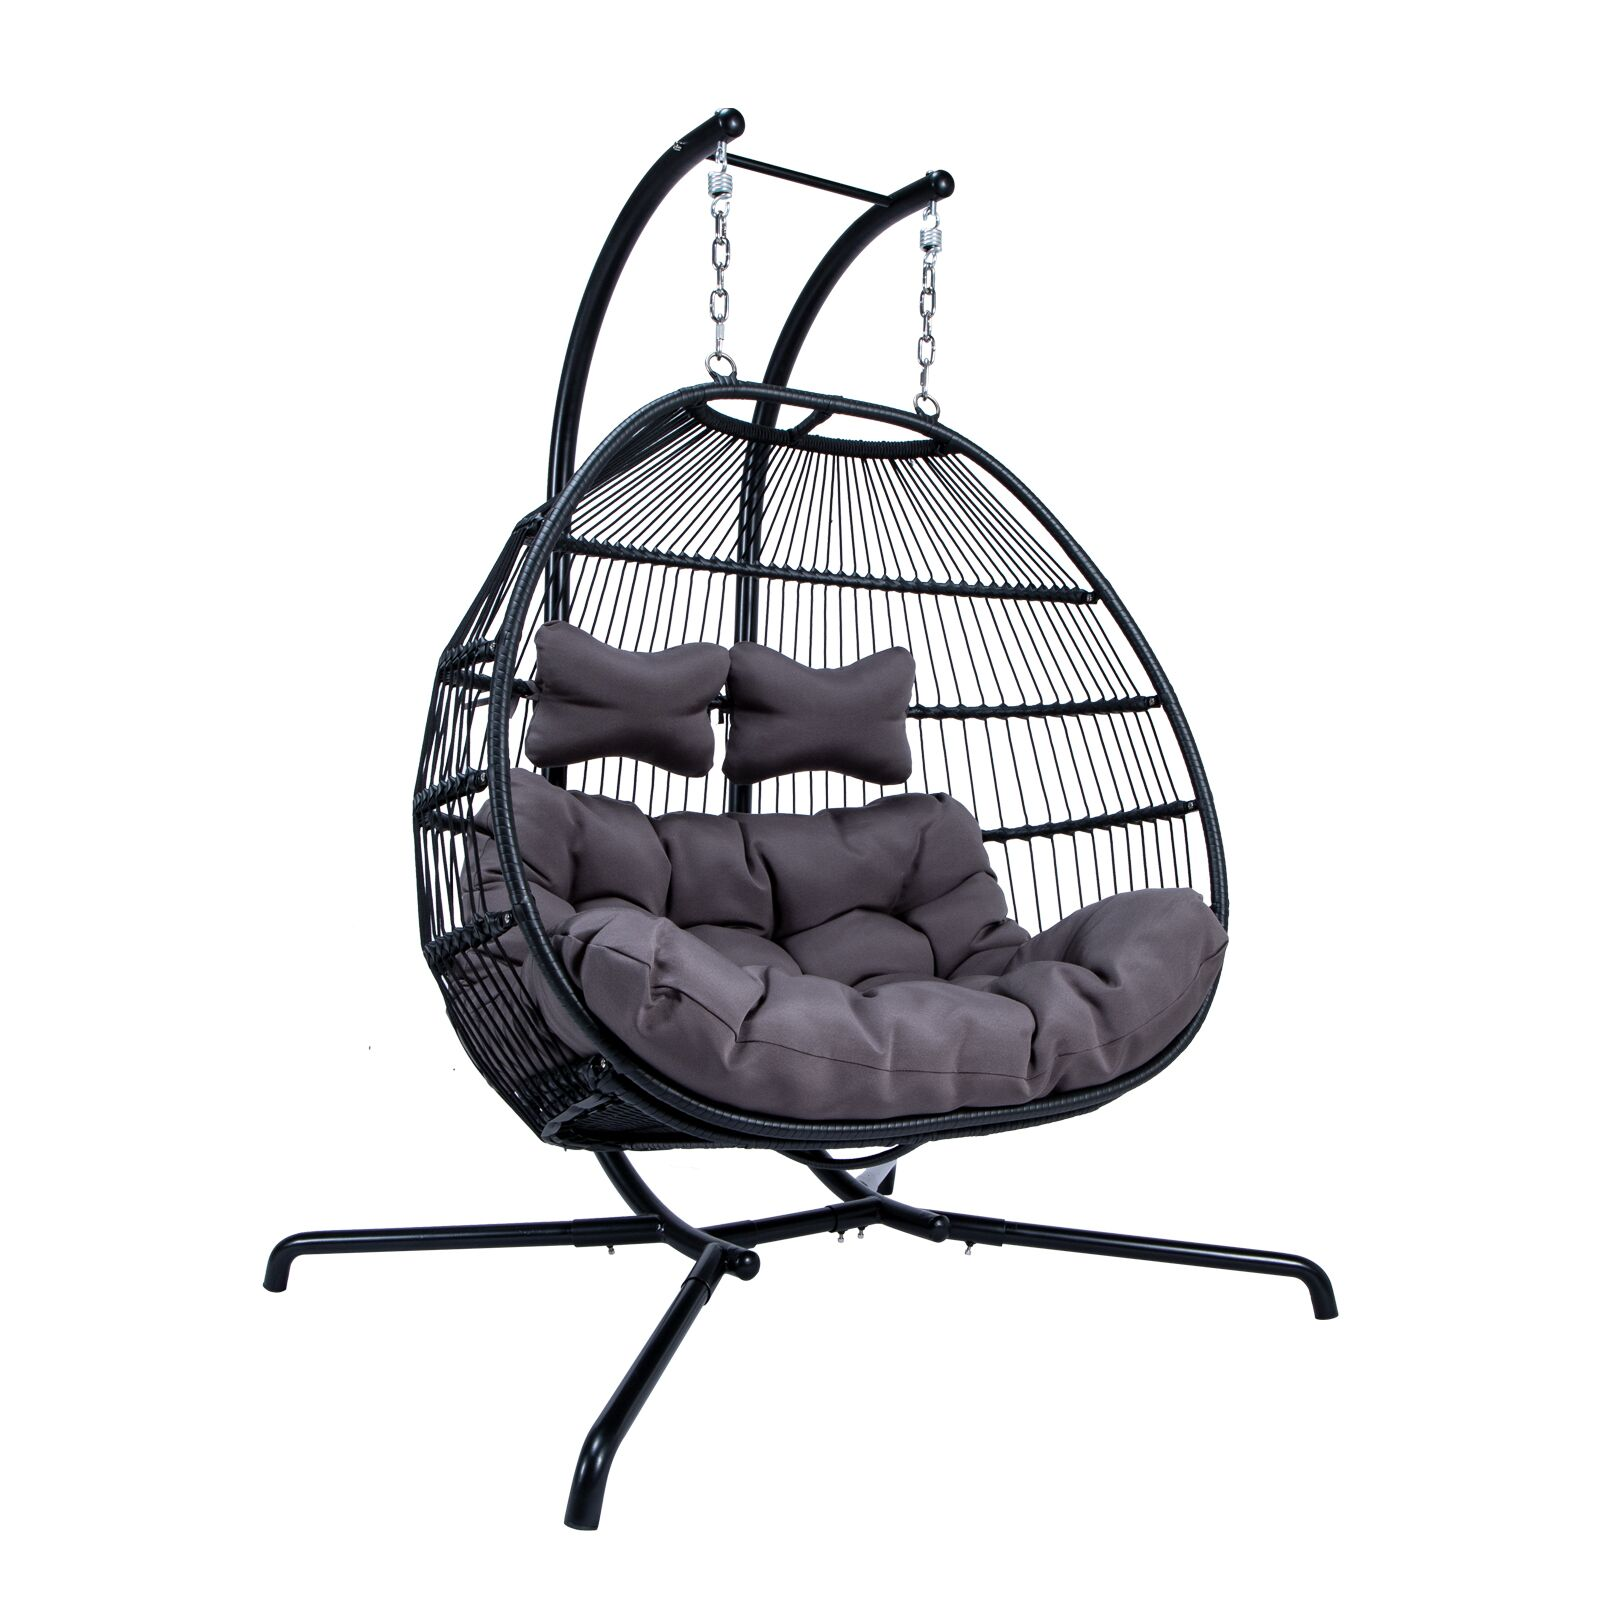 Astonishing Details About Wicker Folding Hanging 2 Person Egg Swing Chair Indoor Outdoor Use Charcoal Machost Co Dining Chair Design Ideas Machostcouk